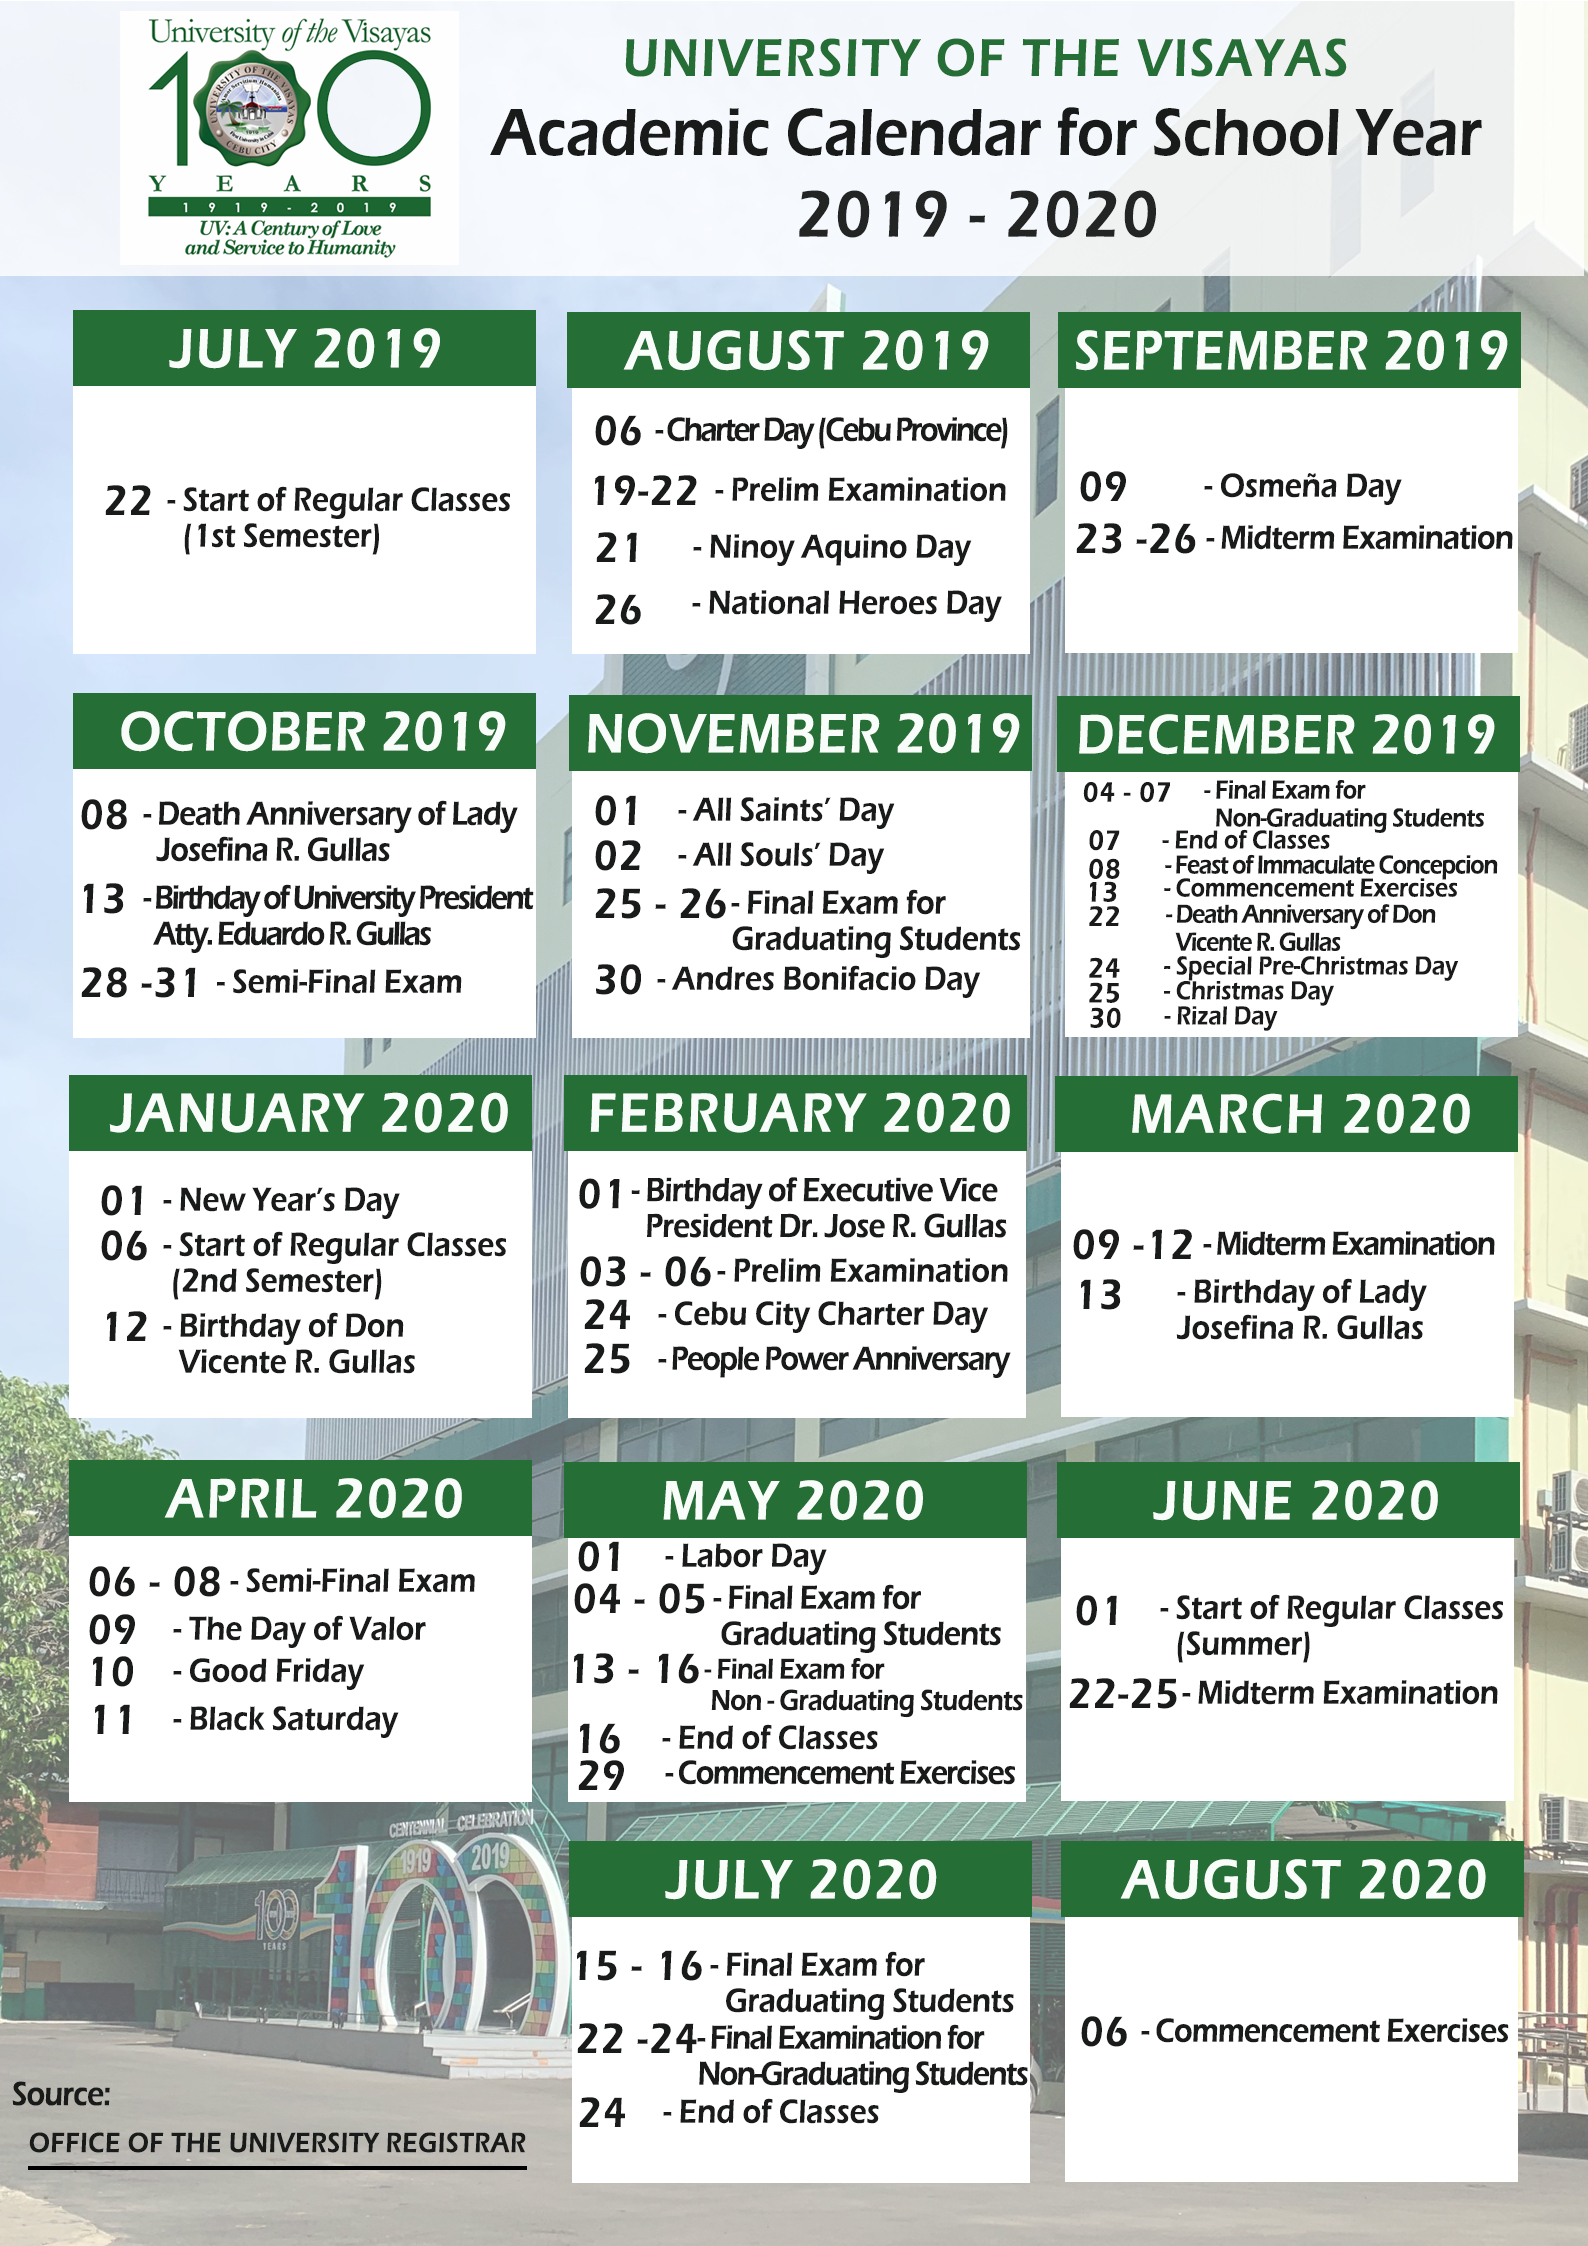 Academic Calendar For S.y 2019 – 2020 | University Of The